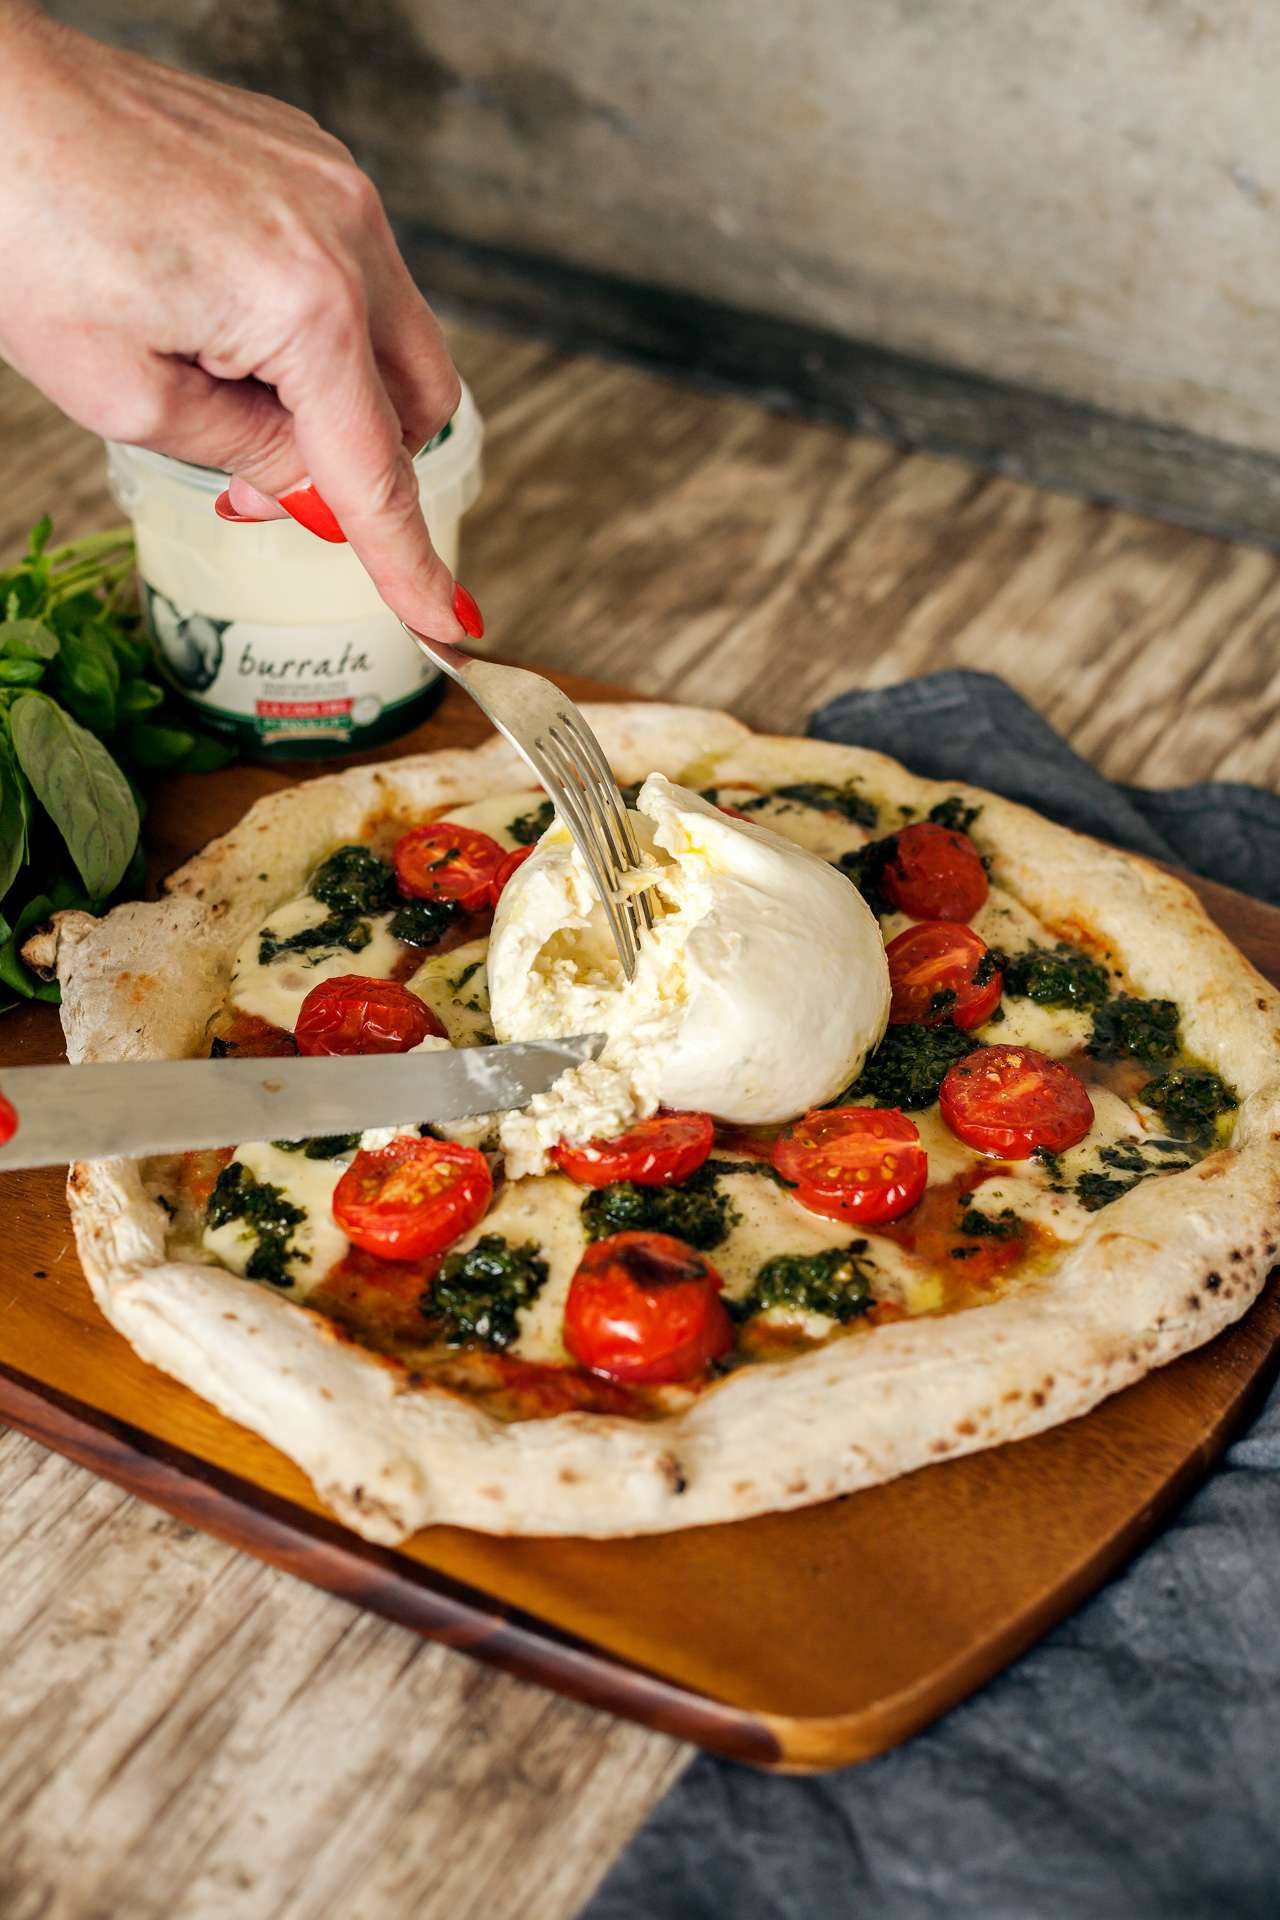 Burrata Pesto Pizza